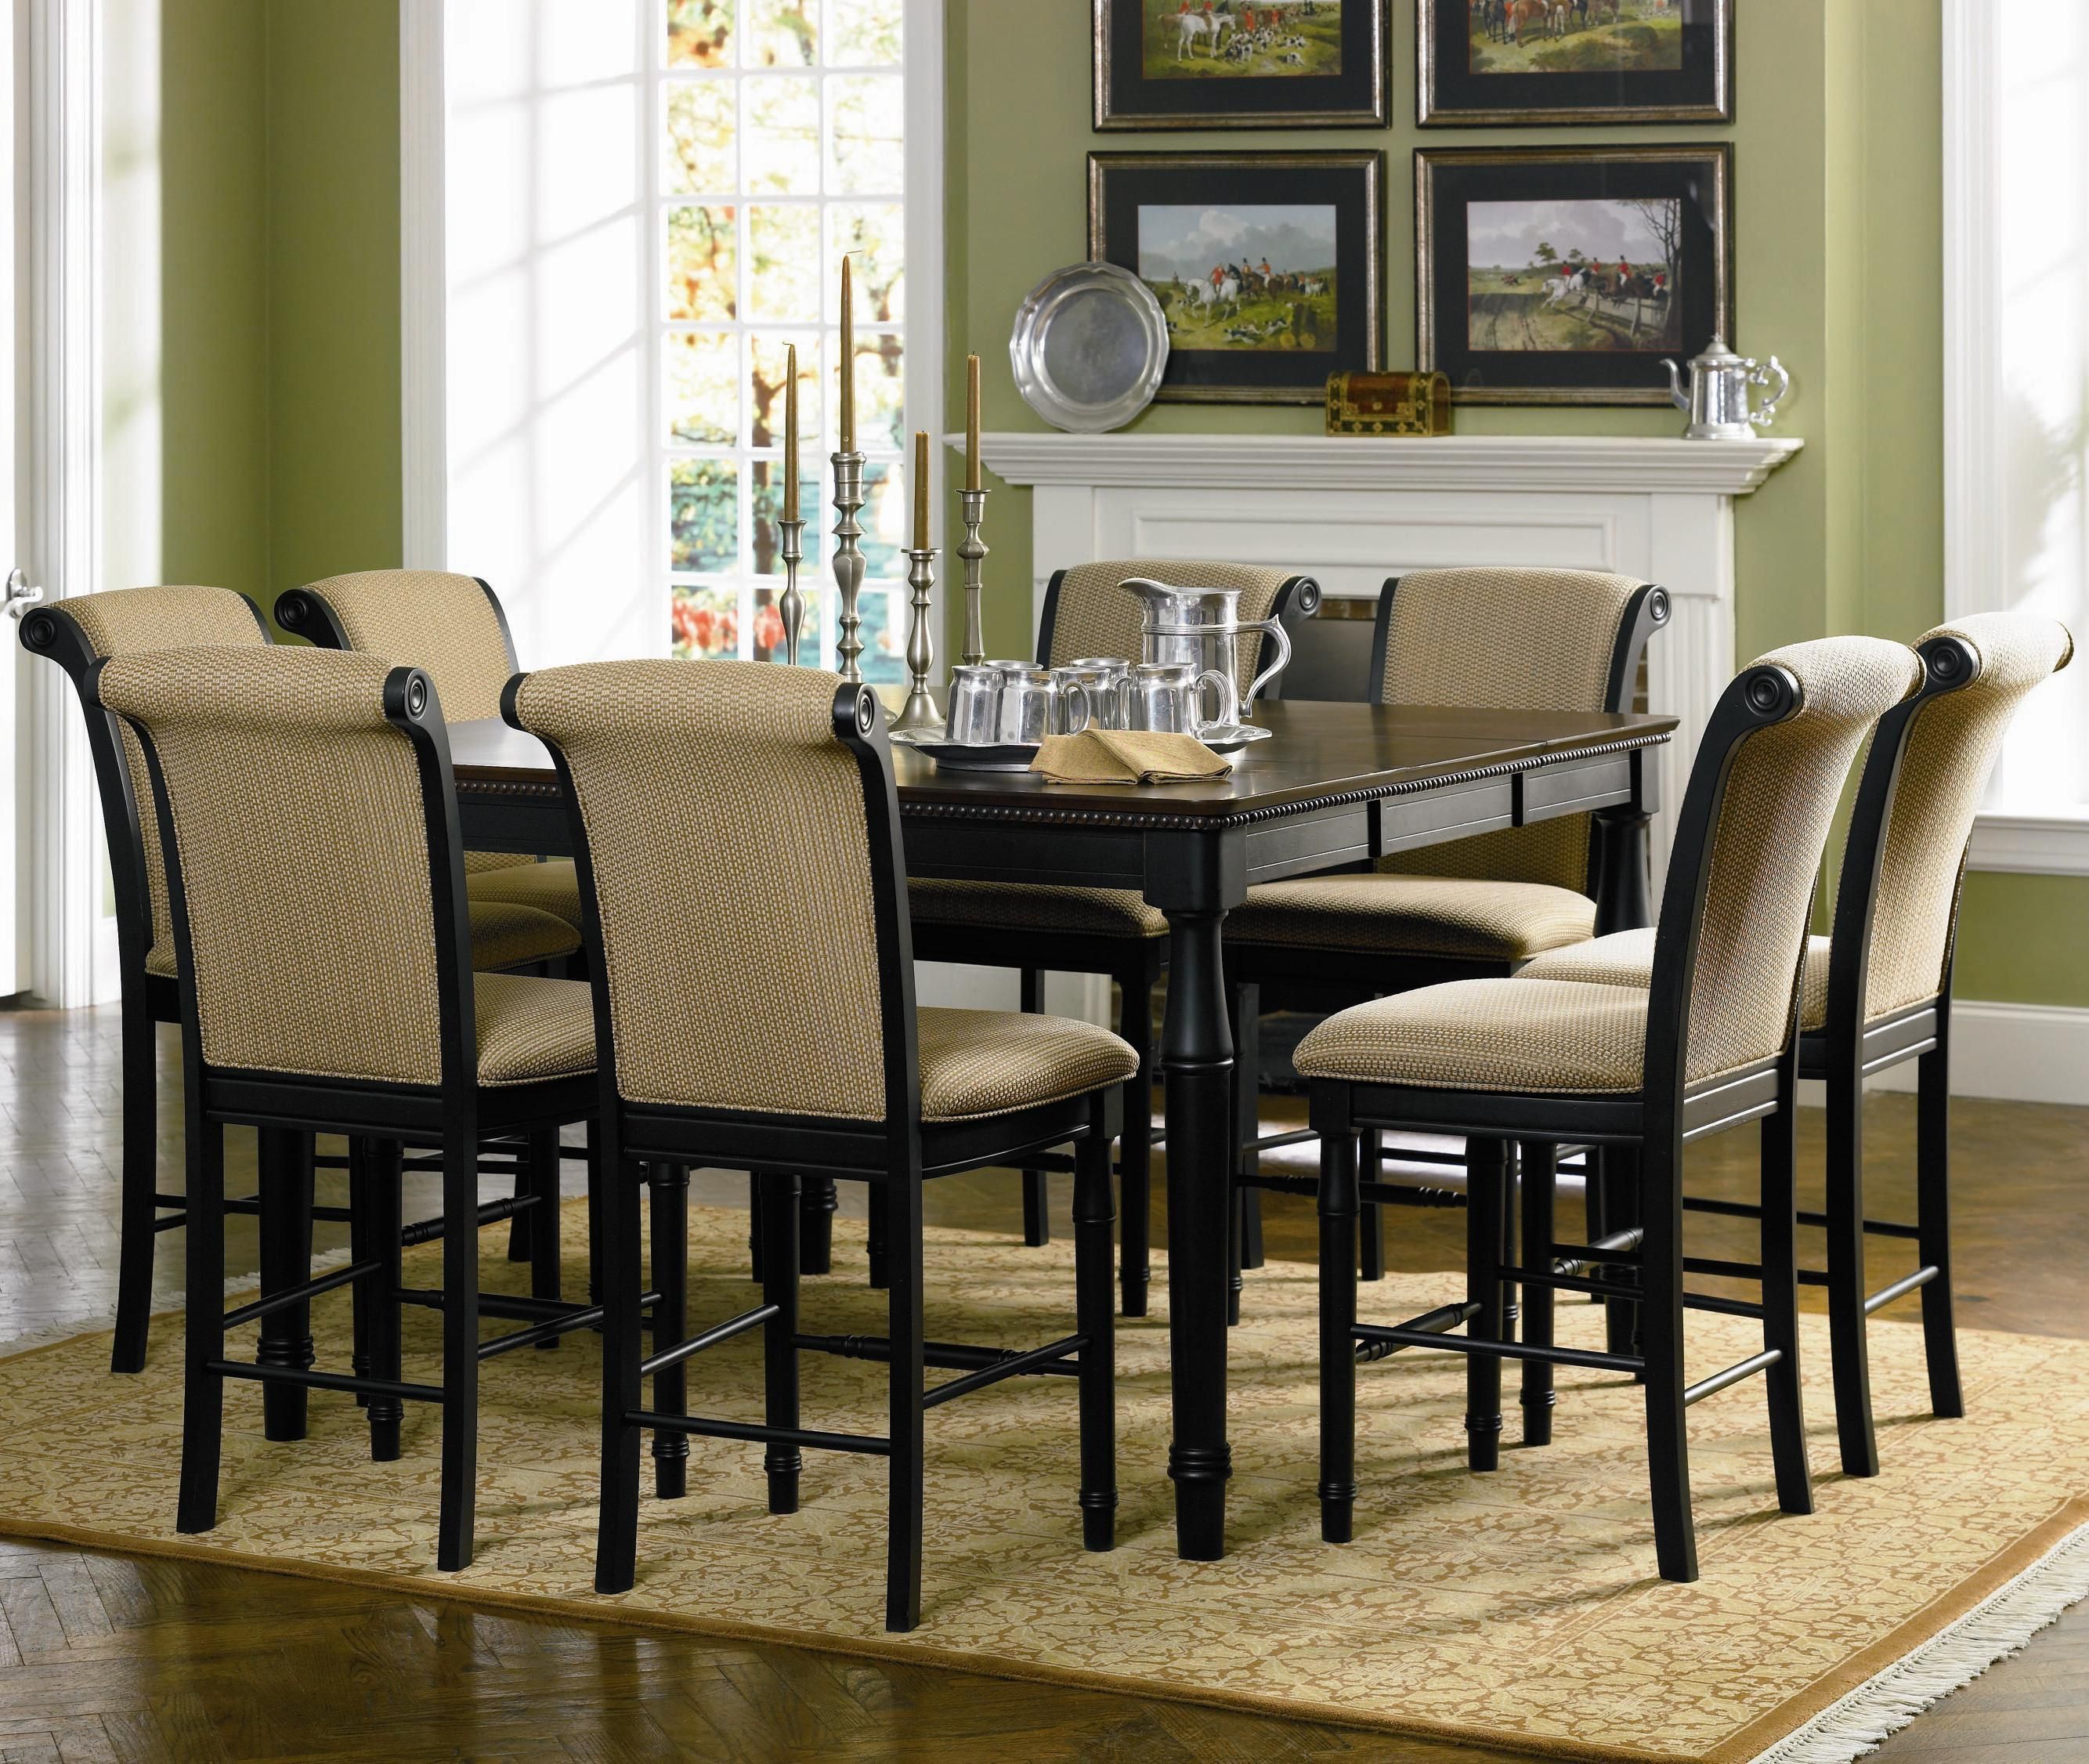 Cabrillo 9 Piece Counter Height Dining Set by Coaster | Decor ...